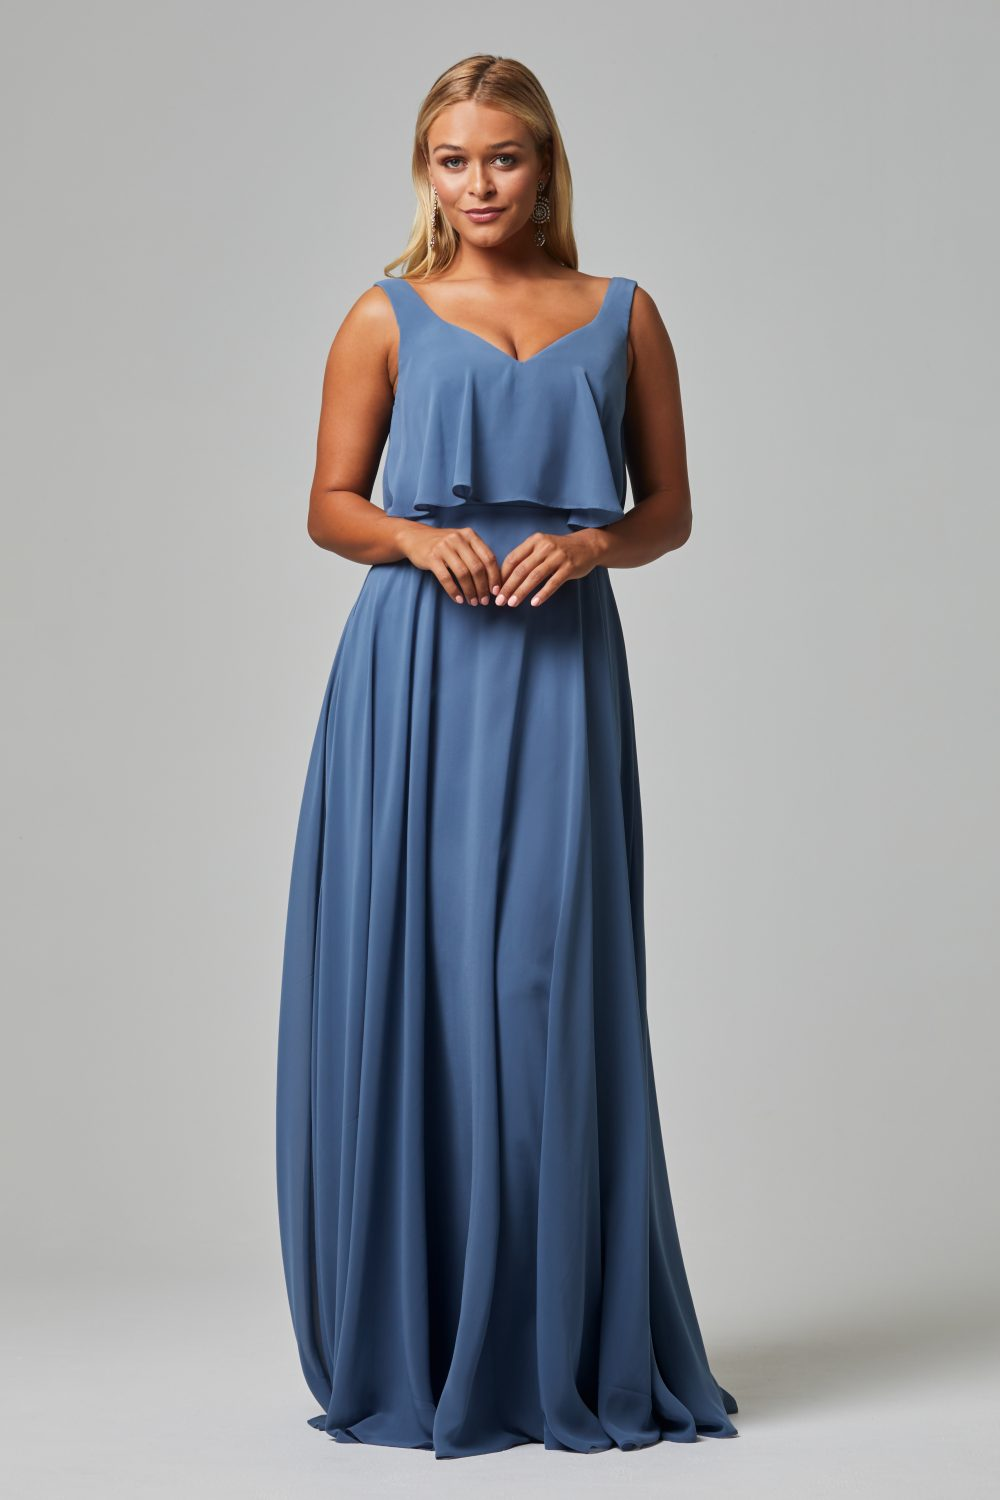 Hesper Bridesmaid Dress - Dusty Blue FRONT